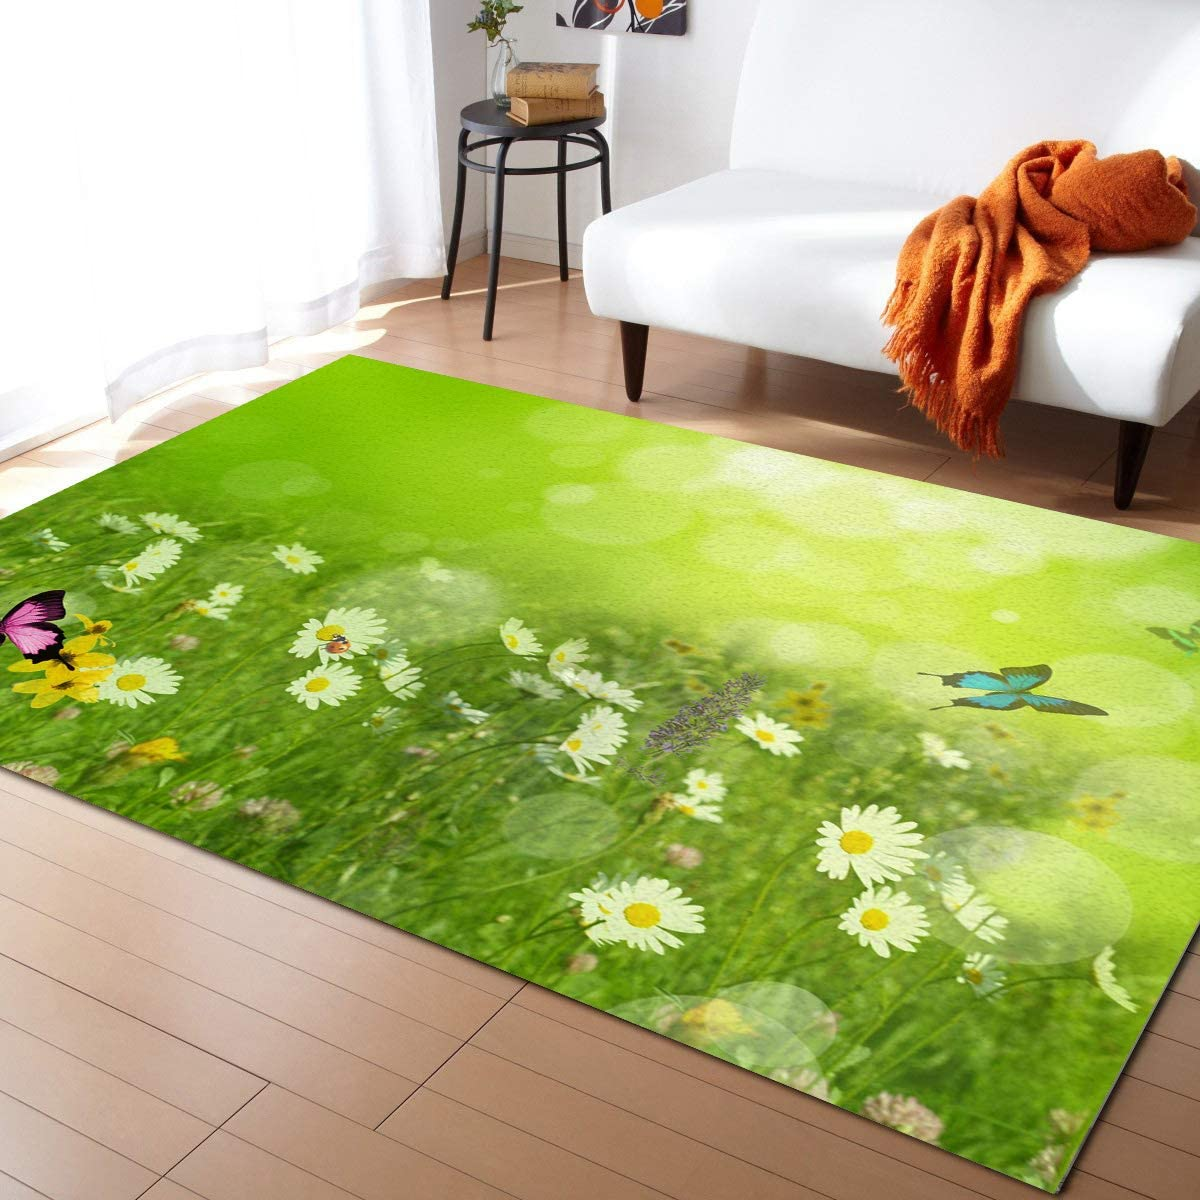 MuswannaA SEAL limited product gift Area Rug for Bedroom Room- Vitalit Spring Living Green